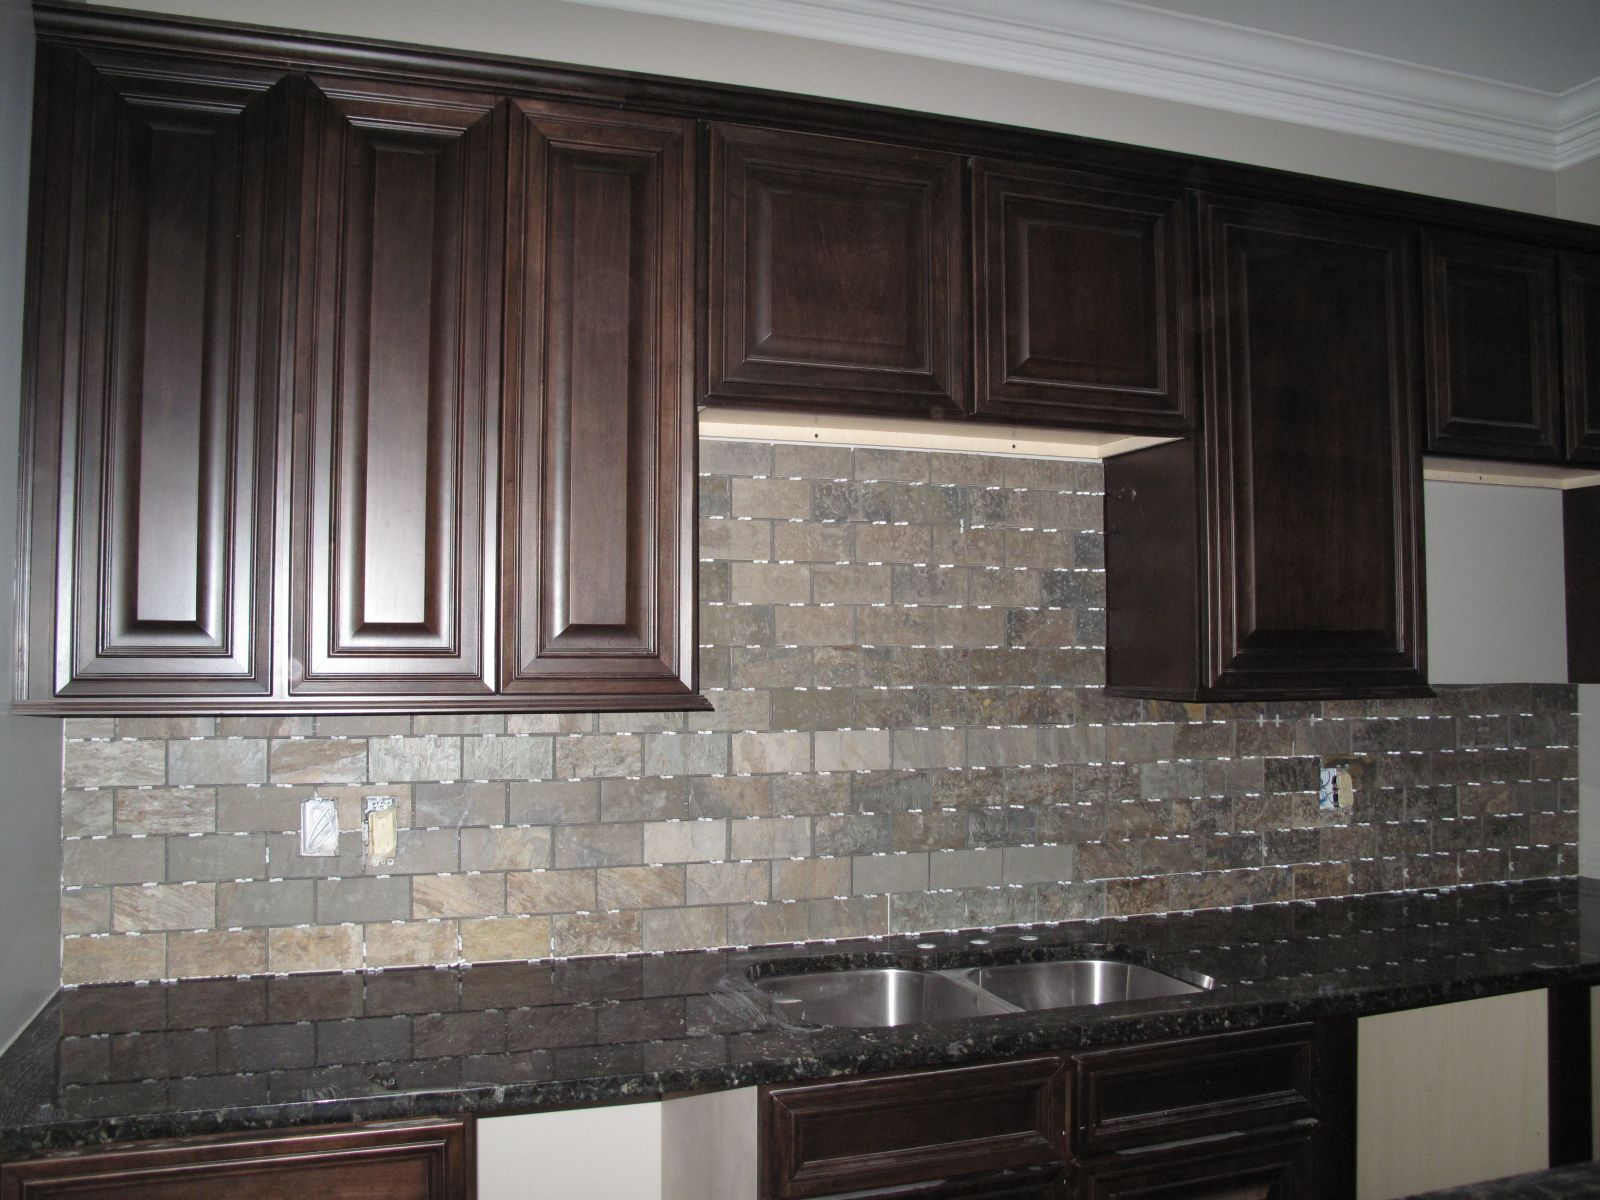 ... For Kitchen Tile Design Ideas: Sumptuous Espresso Wooden Kitchen  Cabinets With Grey Fake Stones Vinyl Slate Backsplash And Black Granite  Countertops In ...